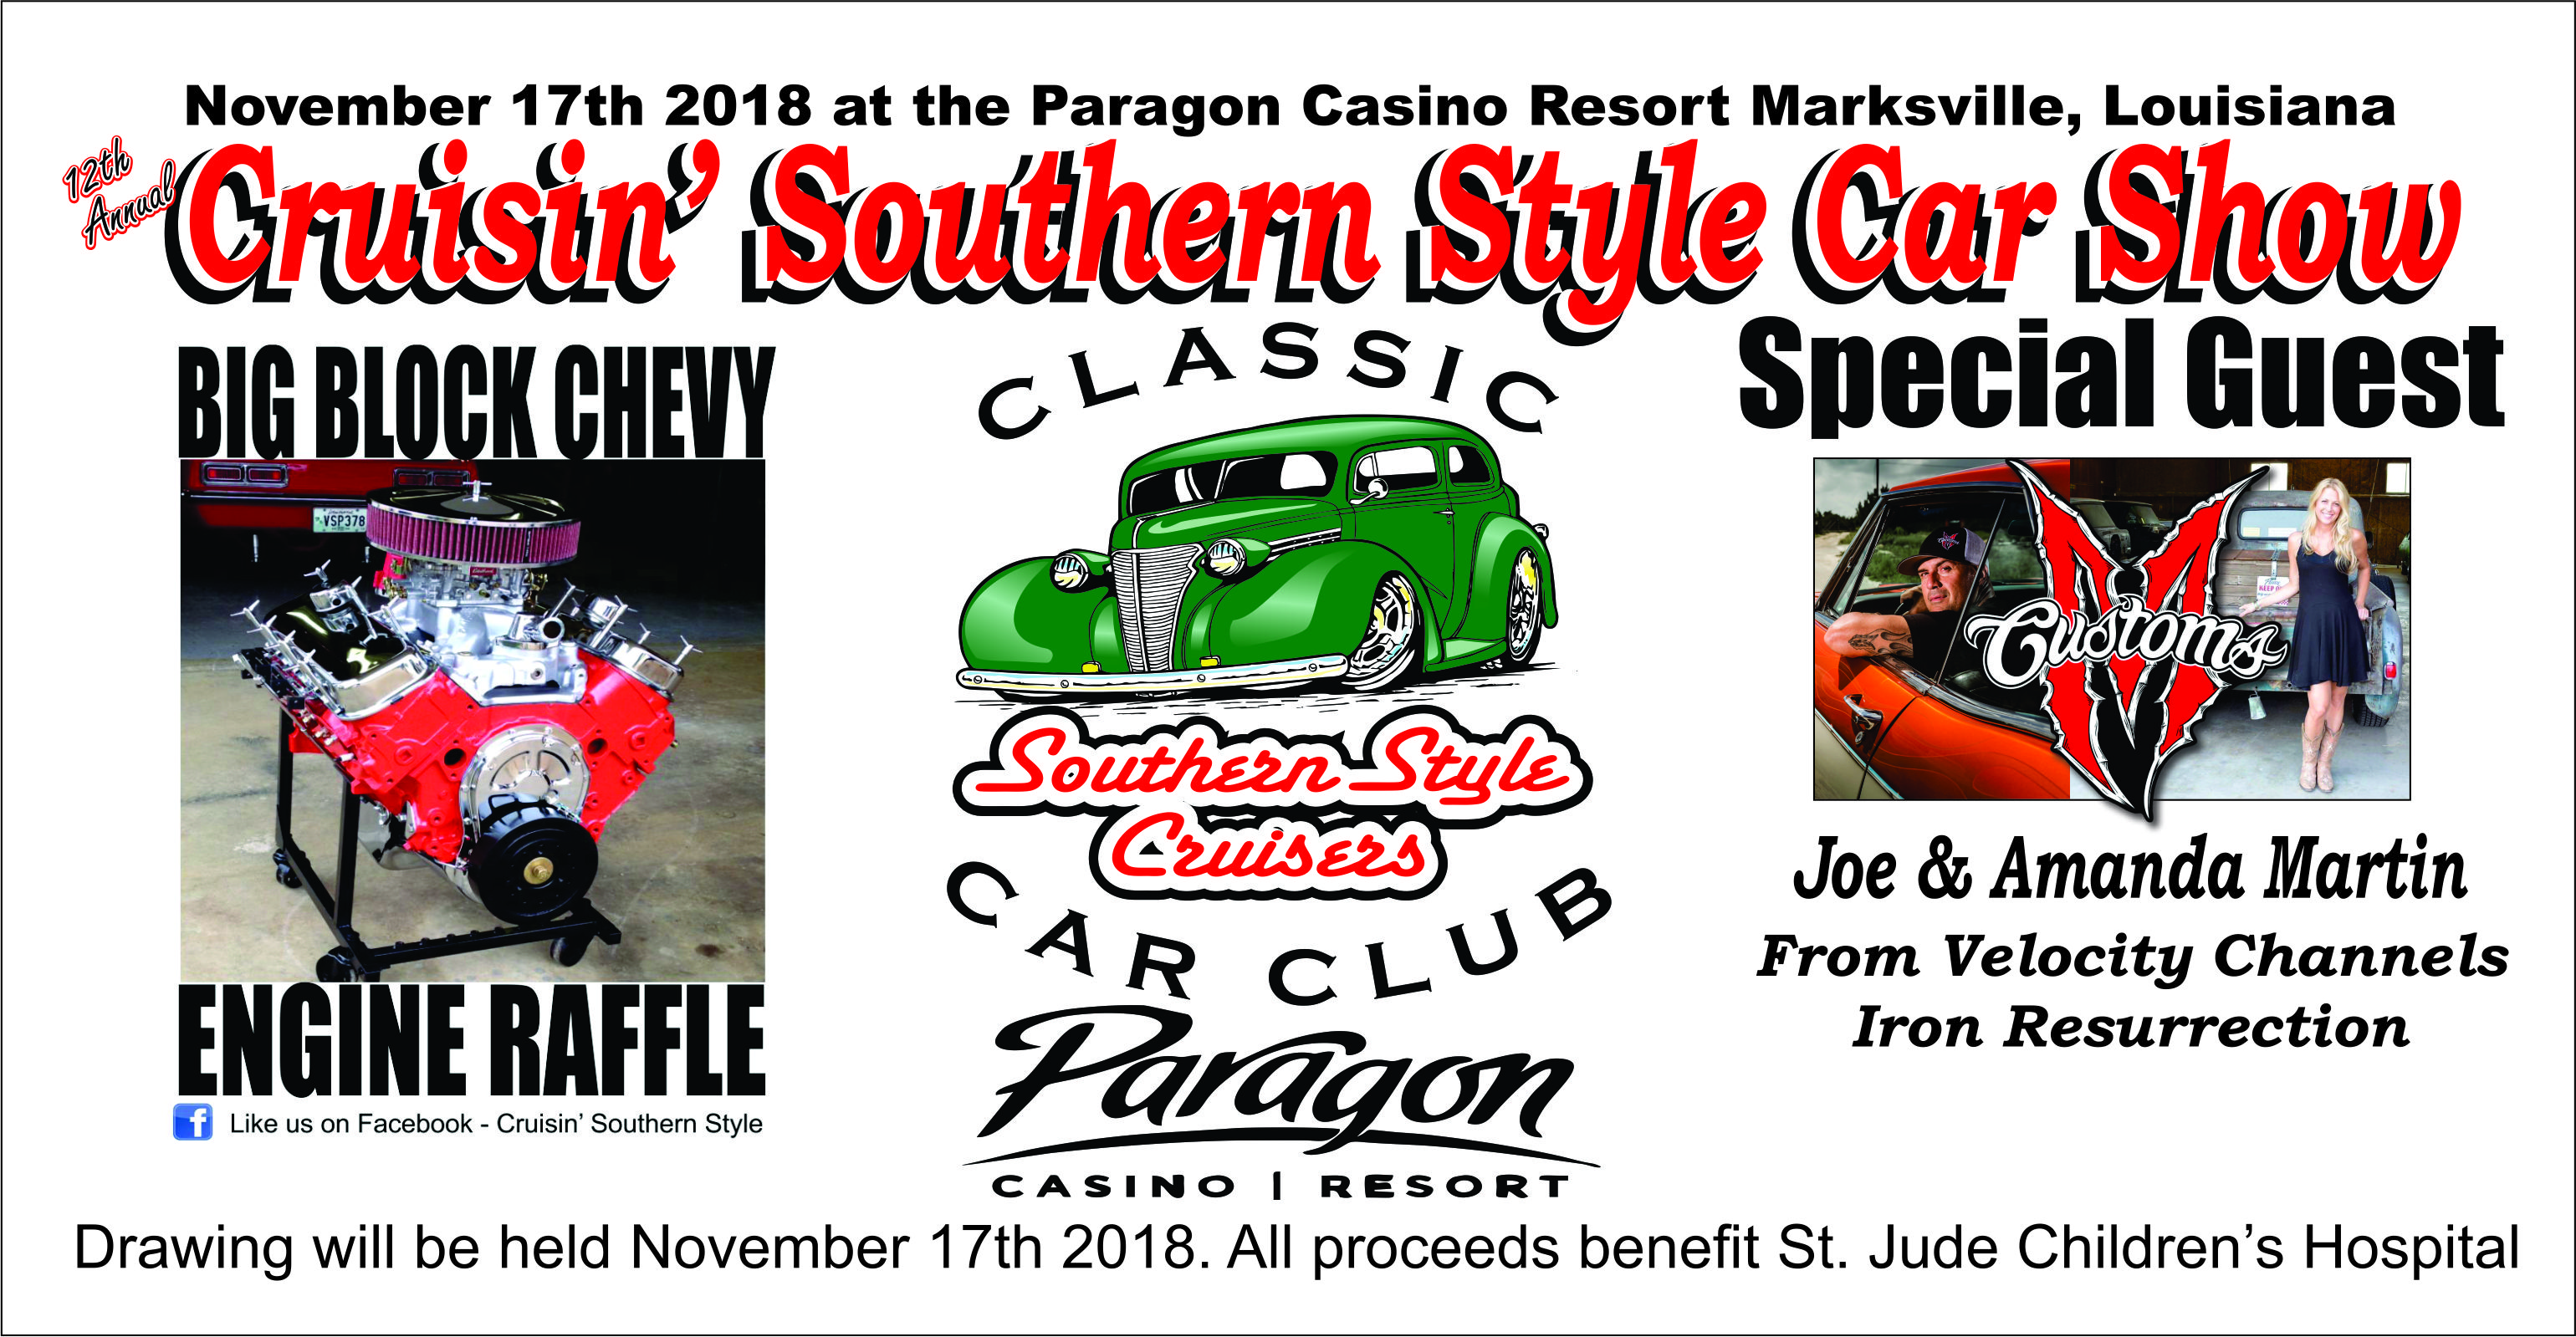 Cruisin Southern Style - Paragon casino car show 2018